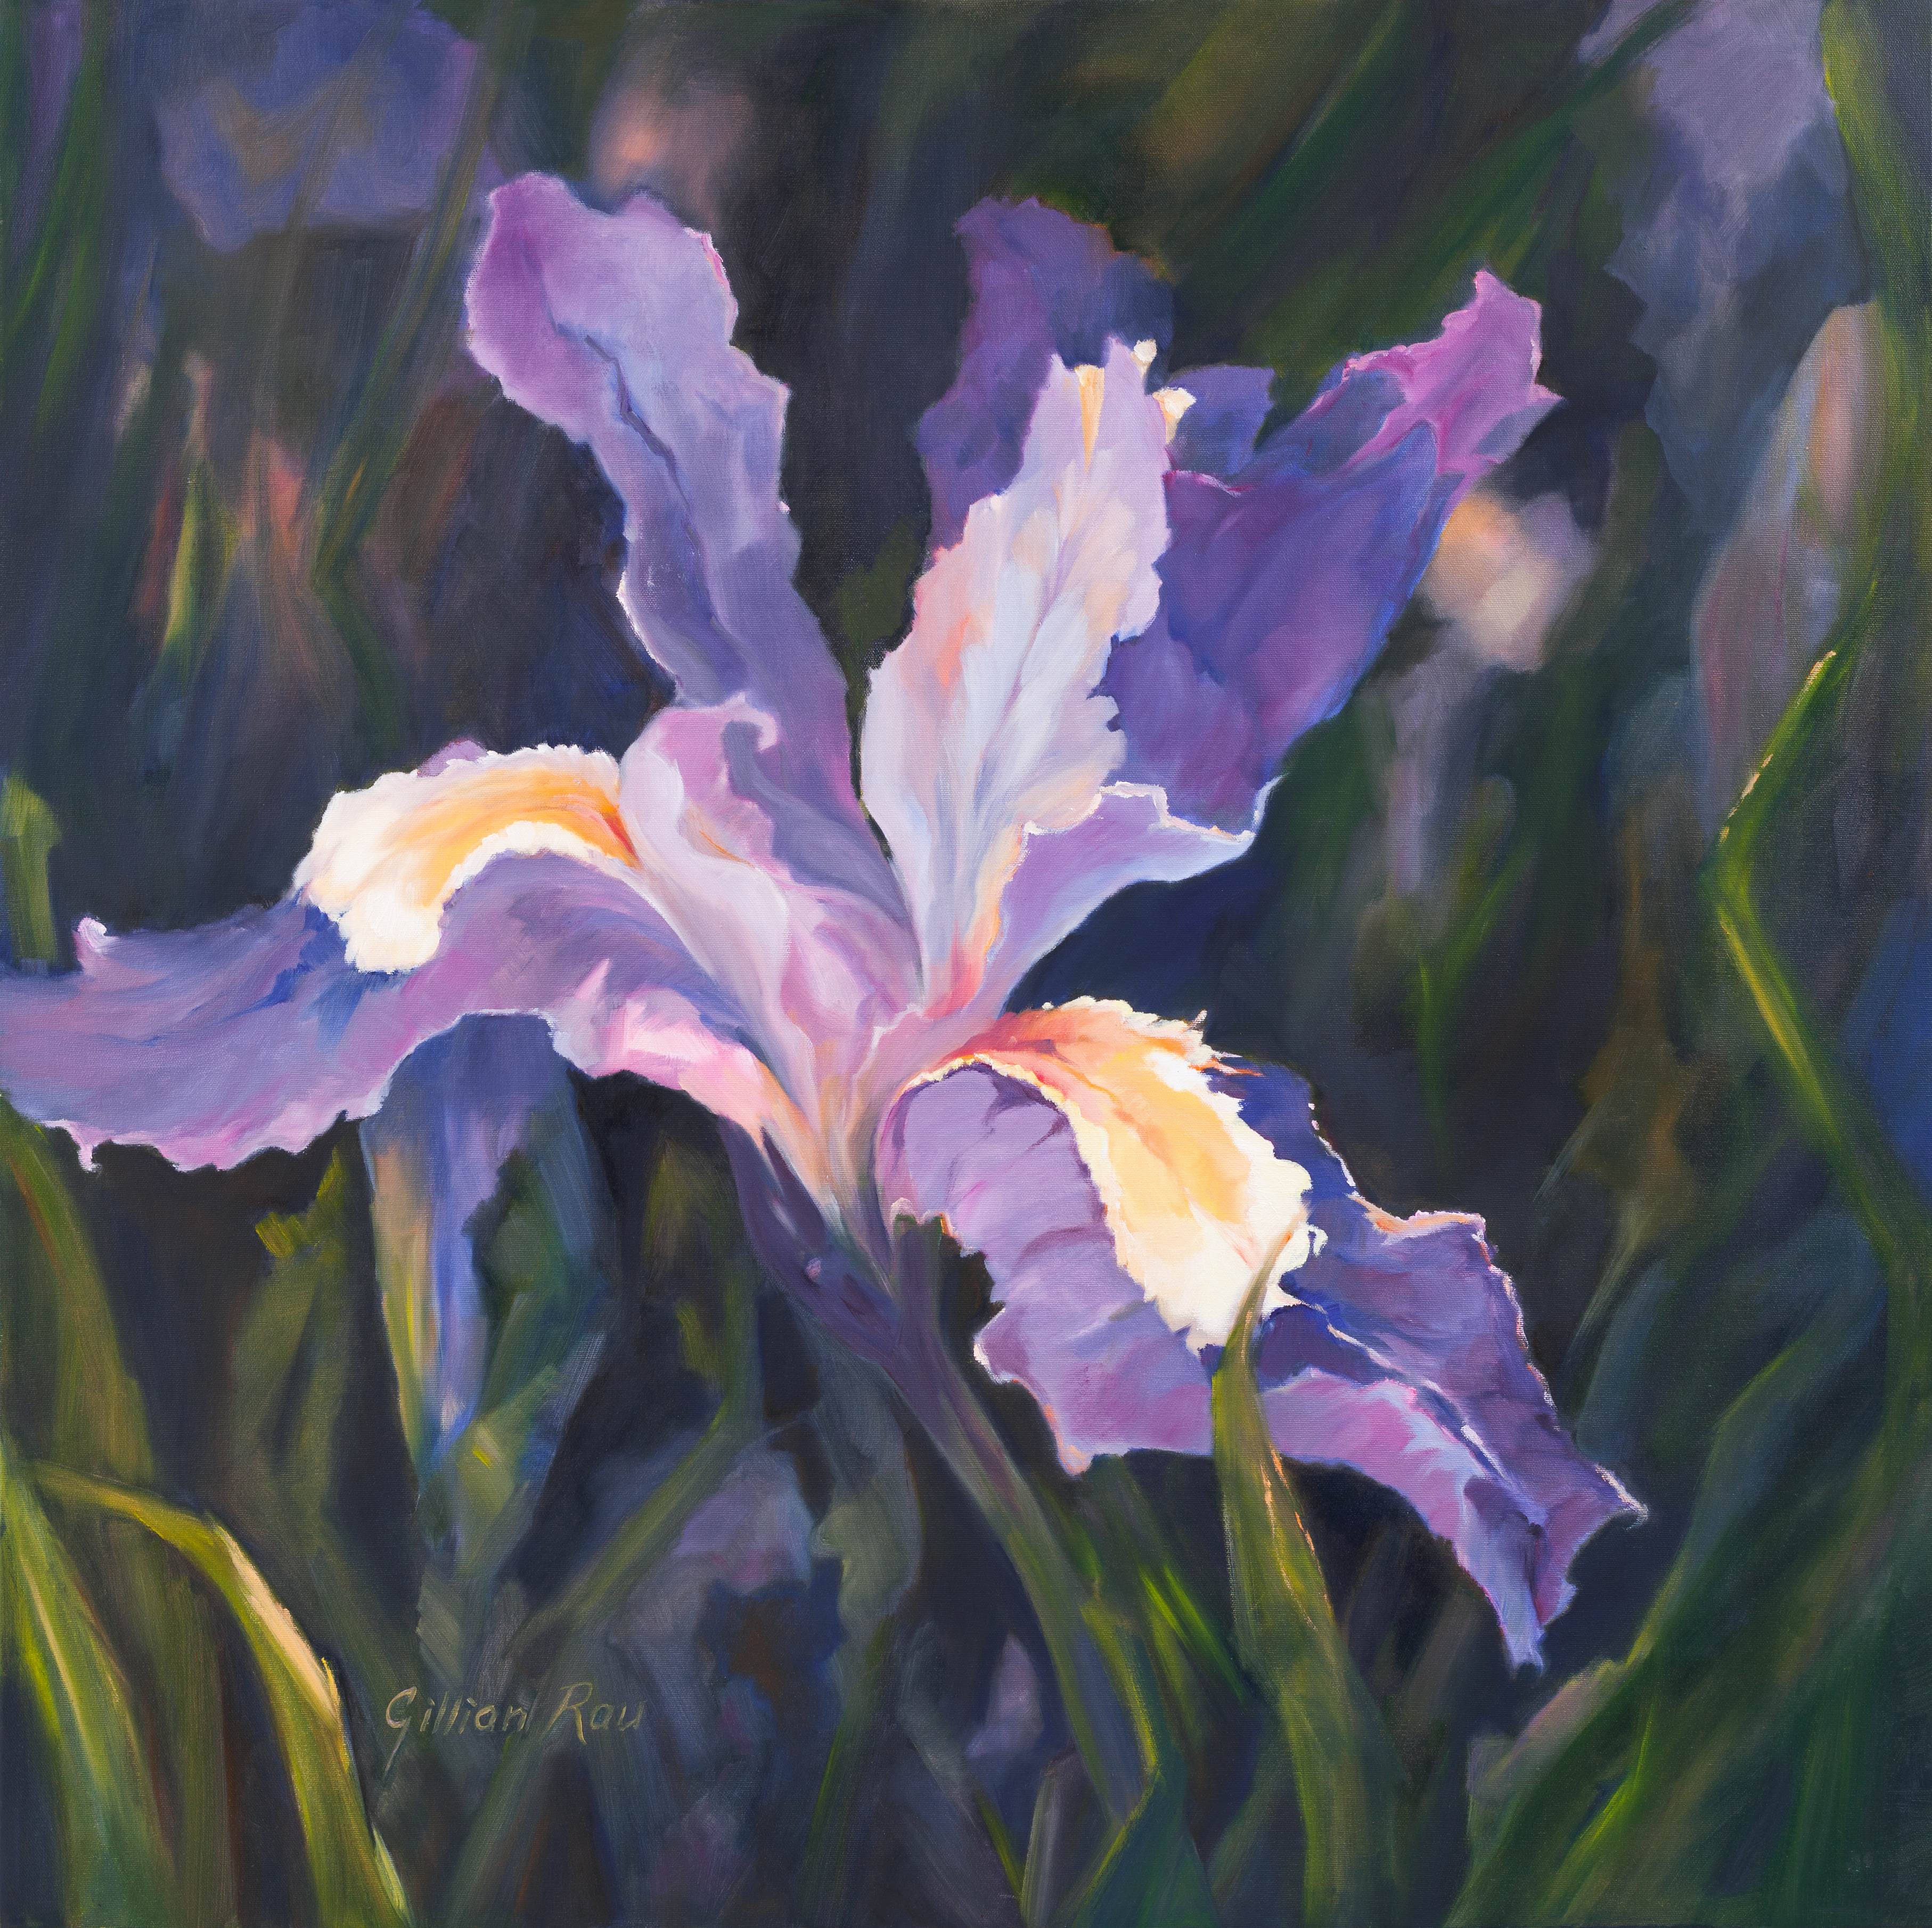 Blue Iris (Beacon of Light)